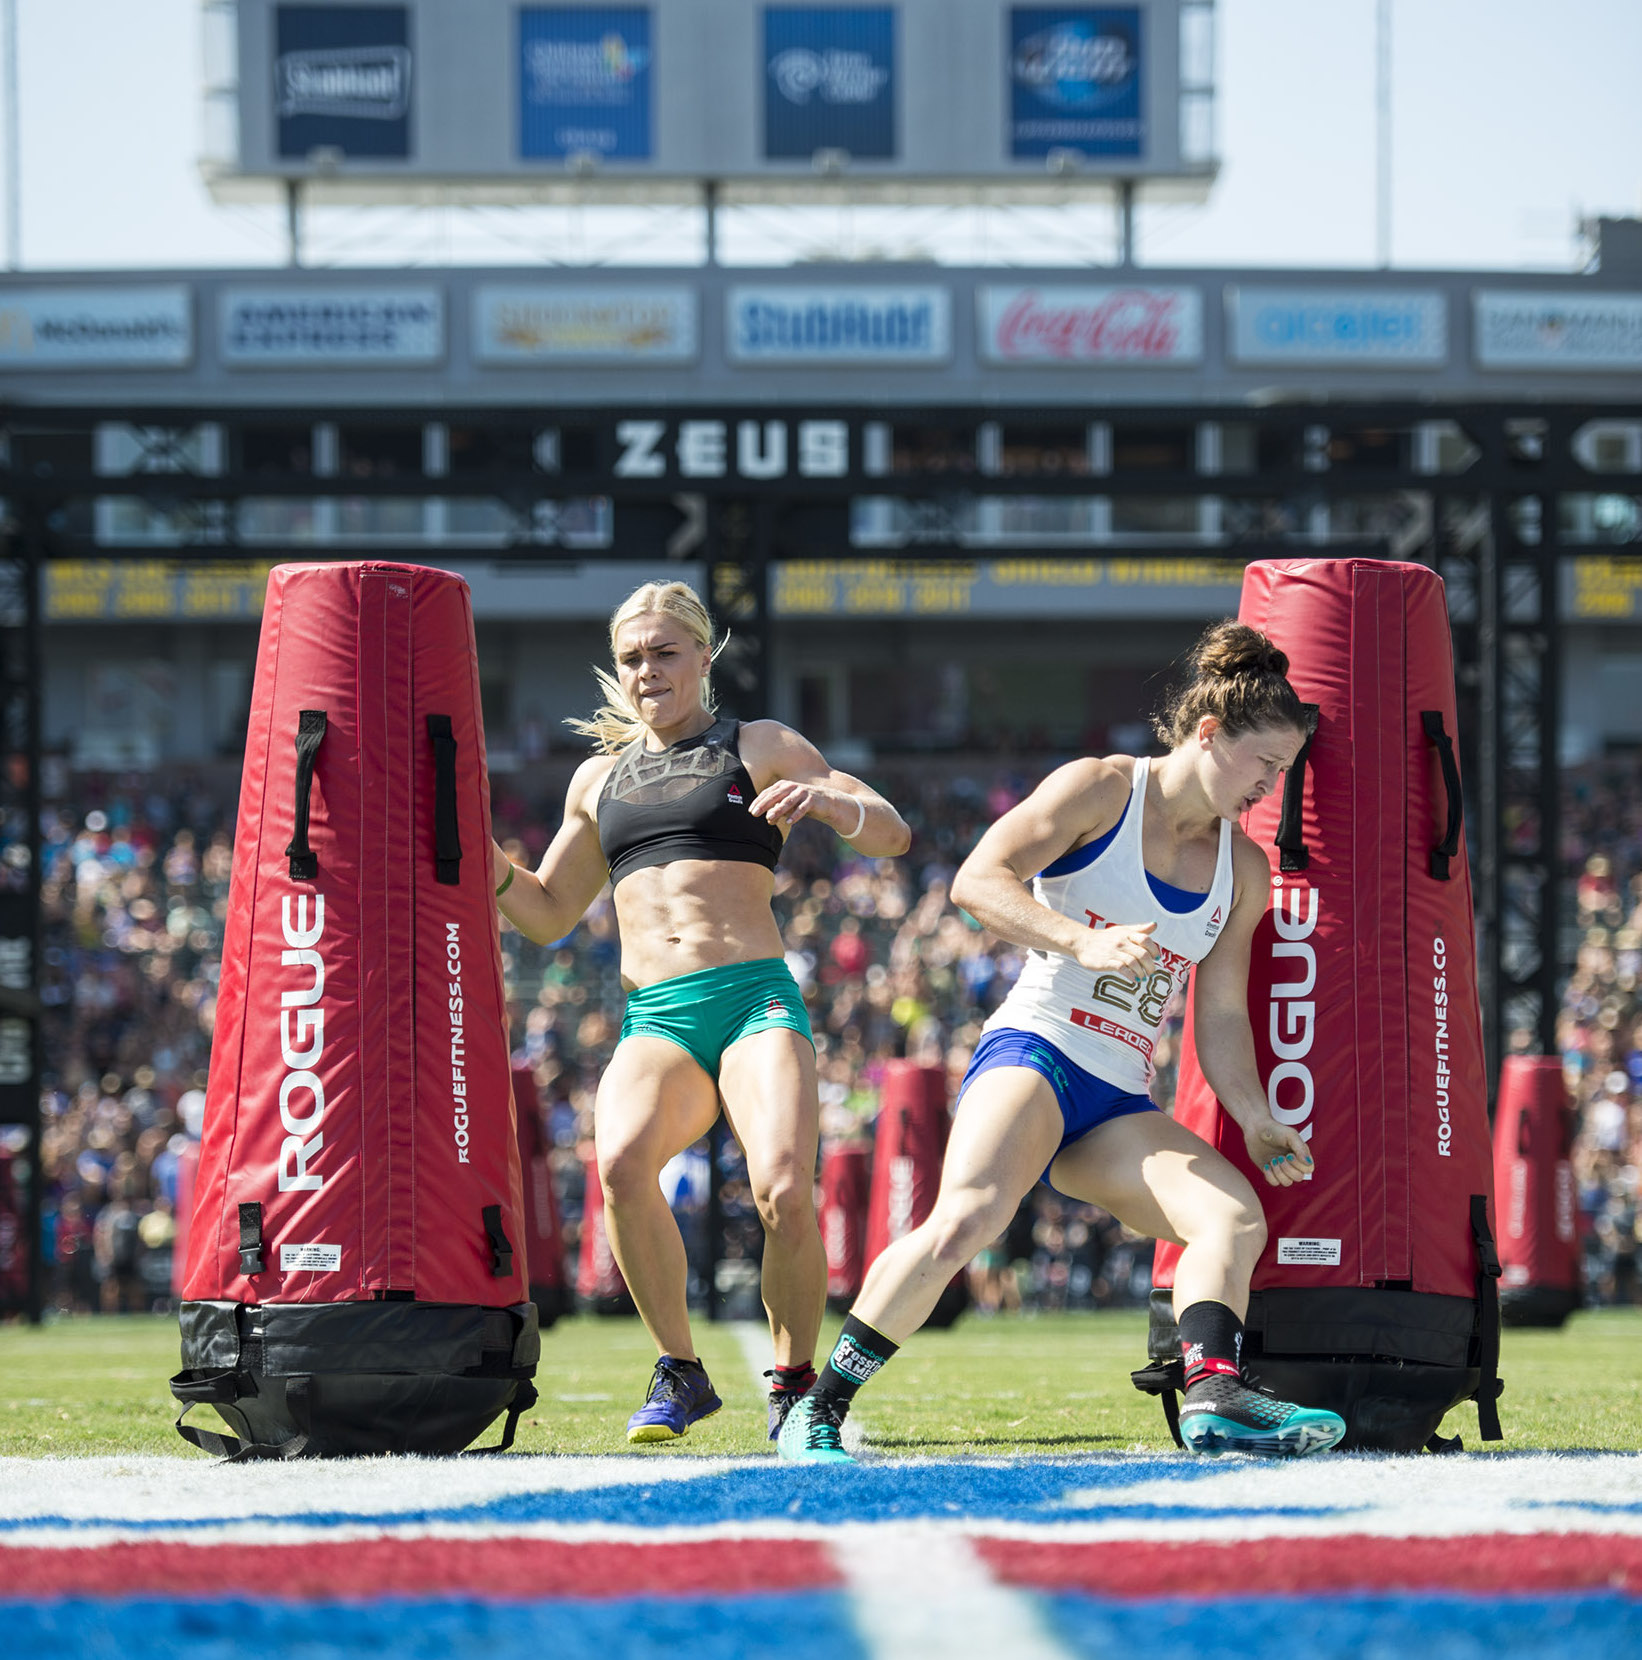 Katrin Davidsdottir and Tia-Clair Toomey at the 2016 CrossFit Games, Nikon 70-200, Nikon D4s --  Copyright CrossFit Inc, 2016, all rights reserved